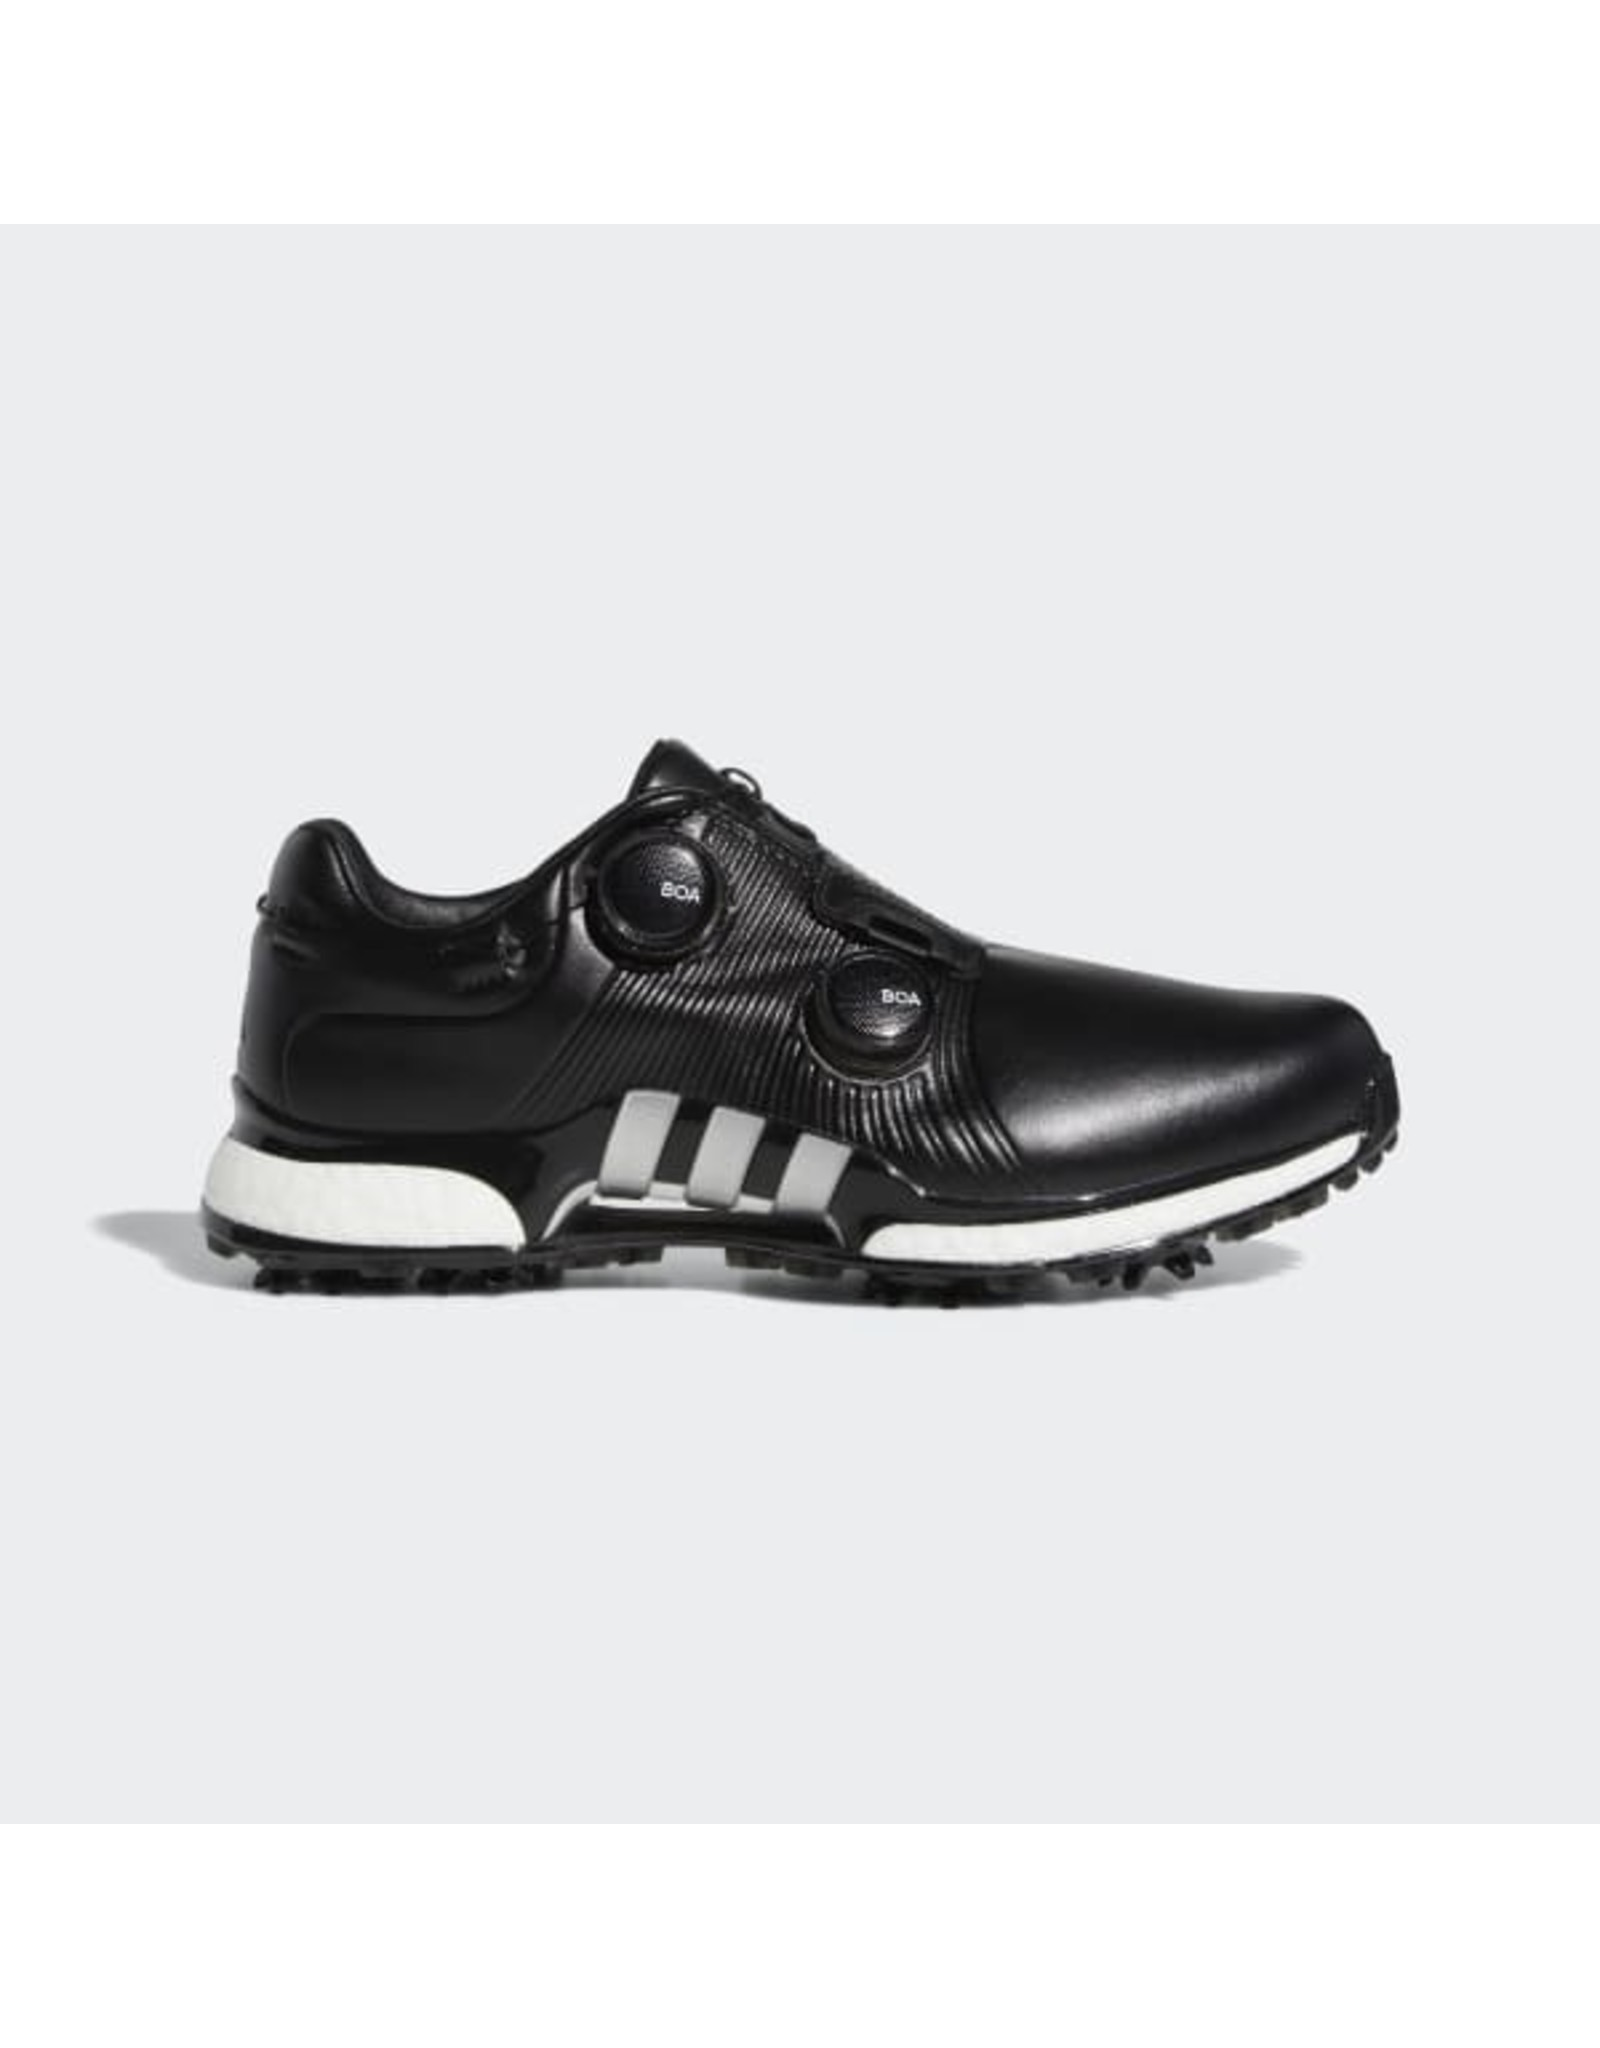 Adidas Adidas Mens Tour360 XT Twin BOA